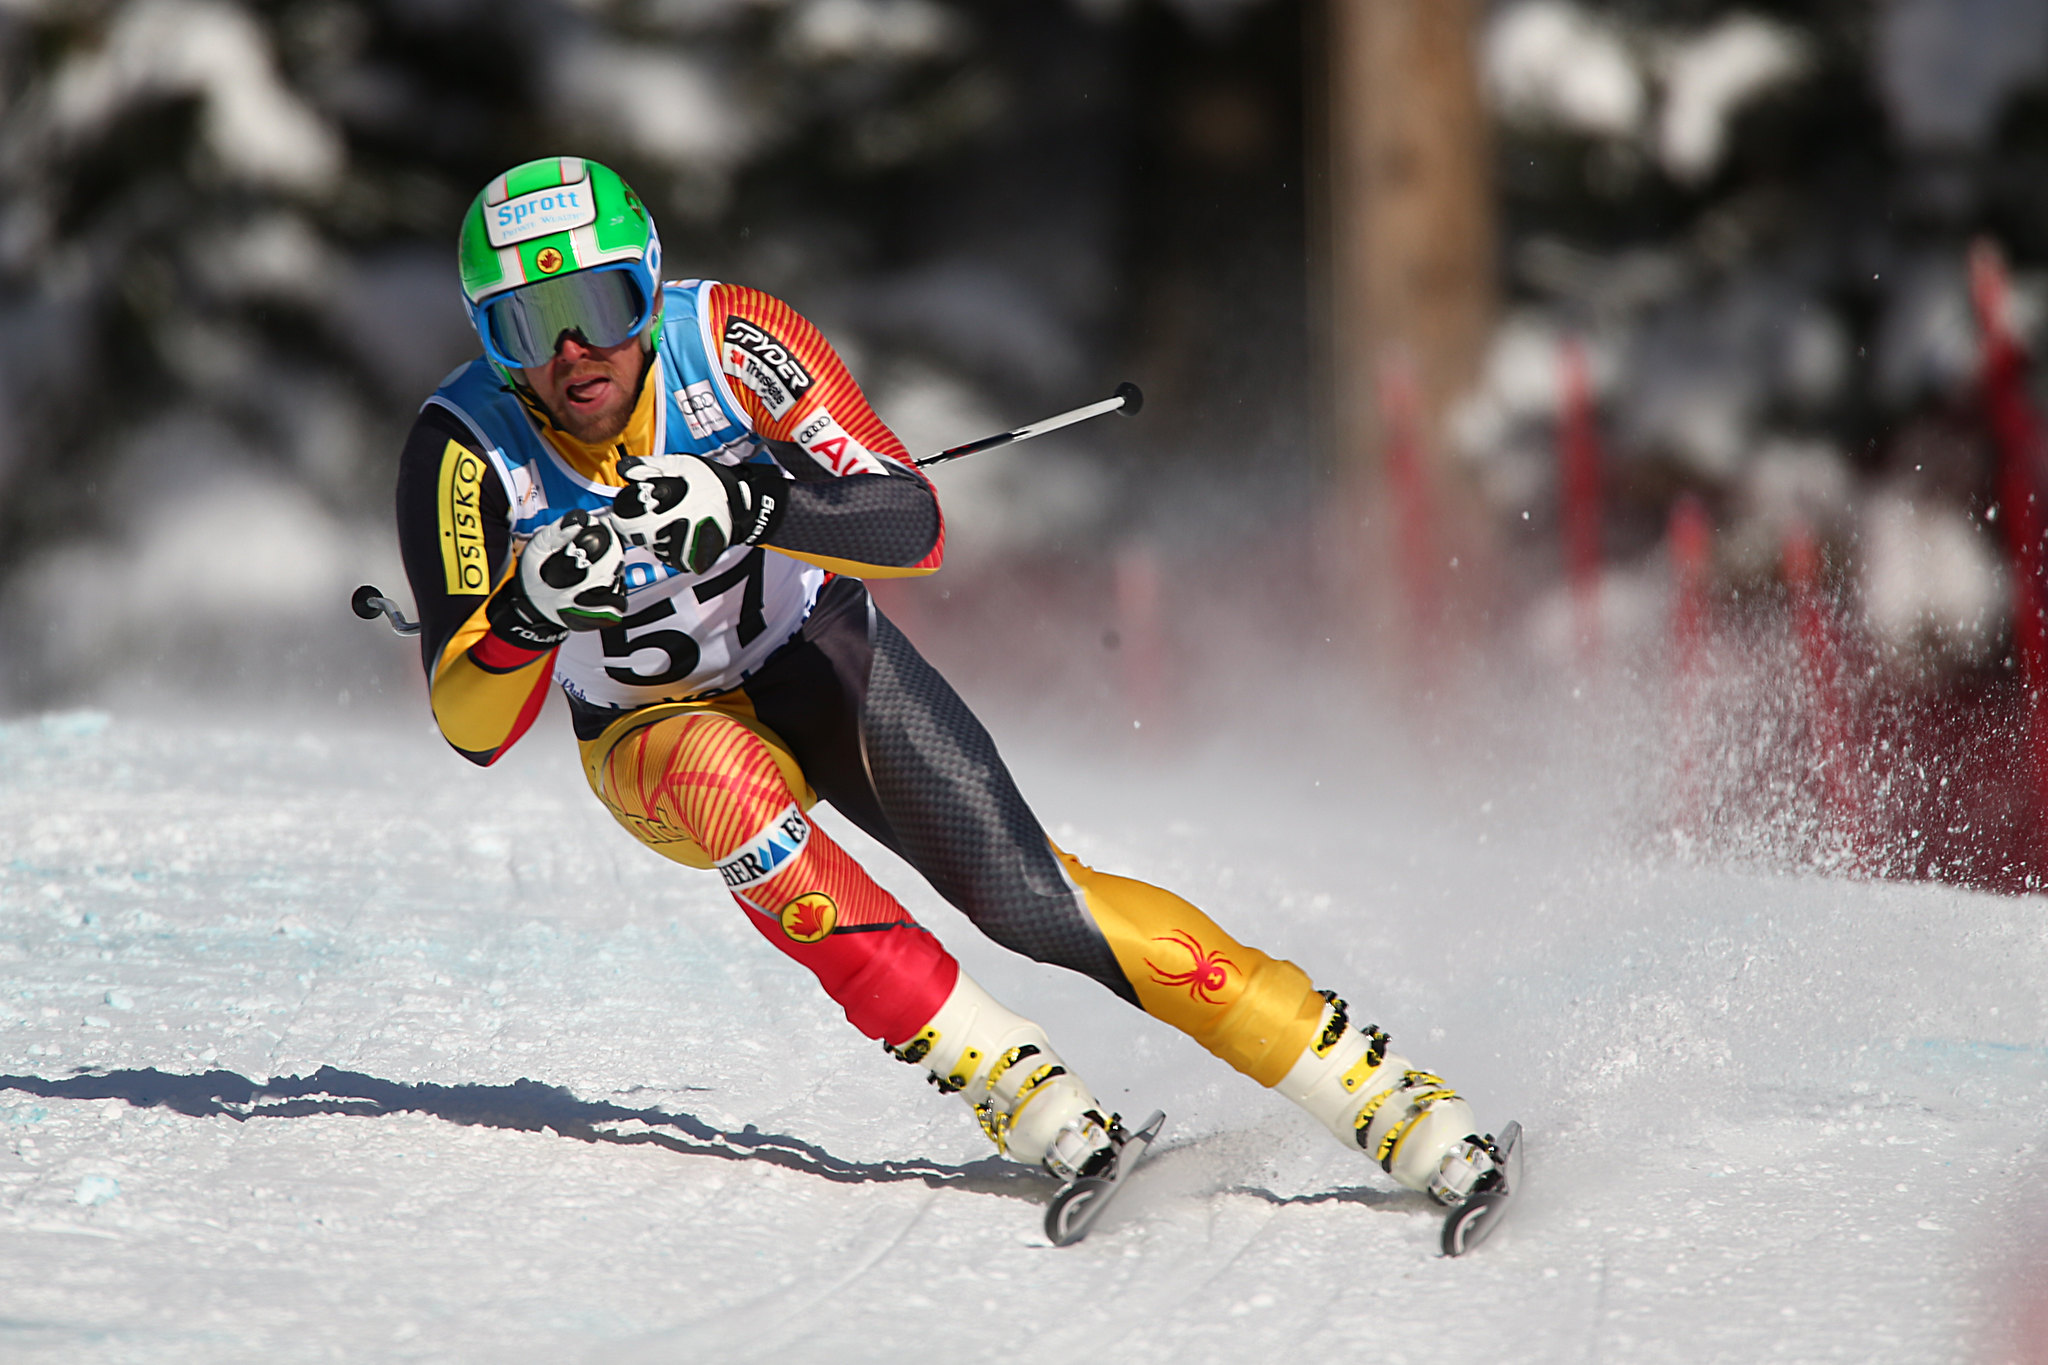 Dustin Cook during the second downhill training run in Lake Louise (Nov. 2012)